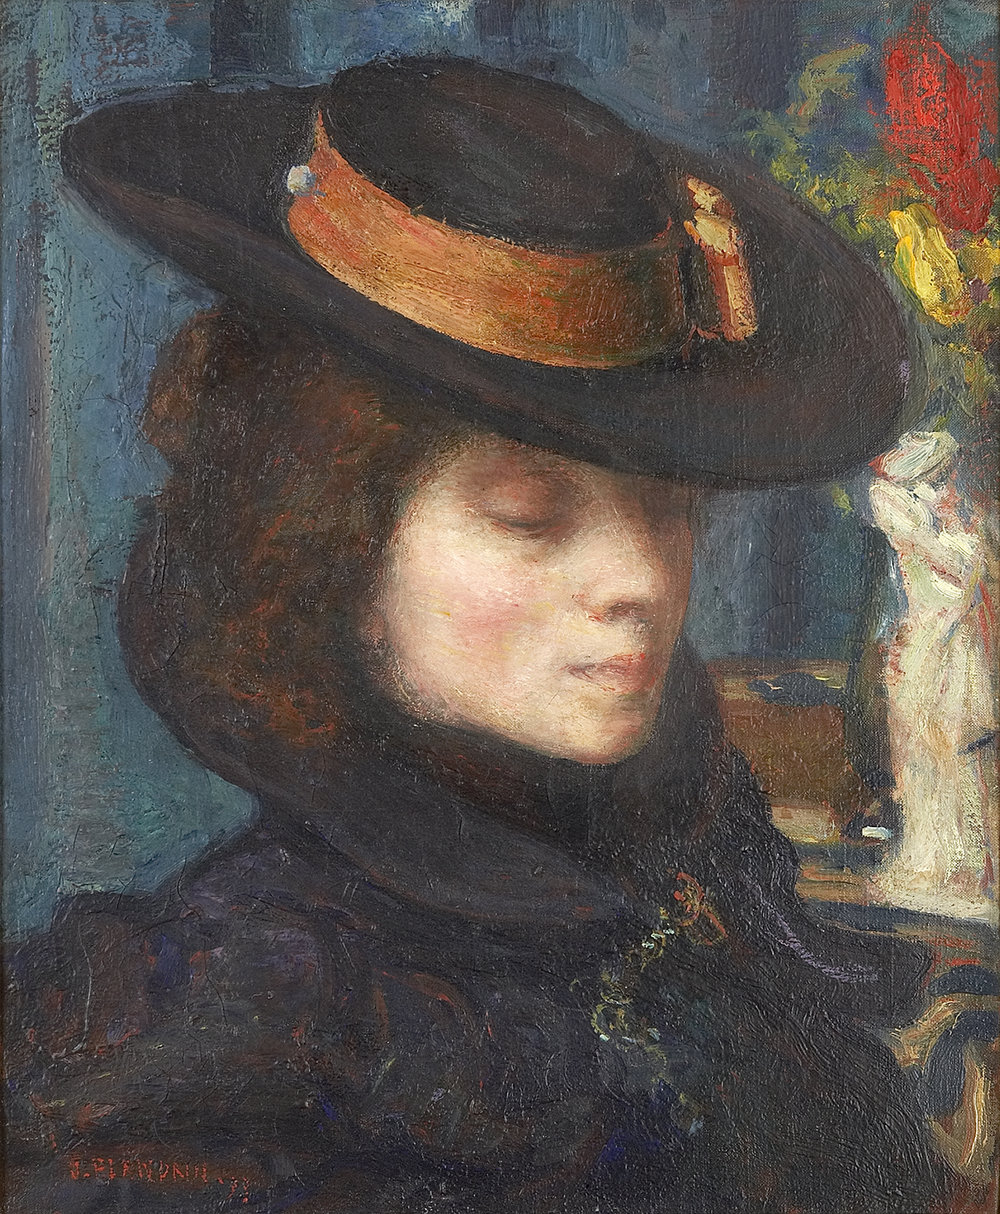 Jacqueline Marval par Jules Flandrin, 1889. 46 x 38 cm. Collection privée, Paris.